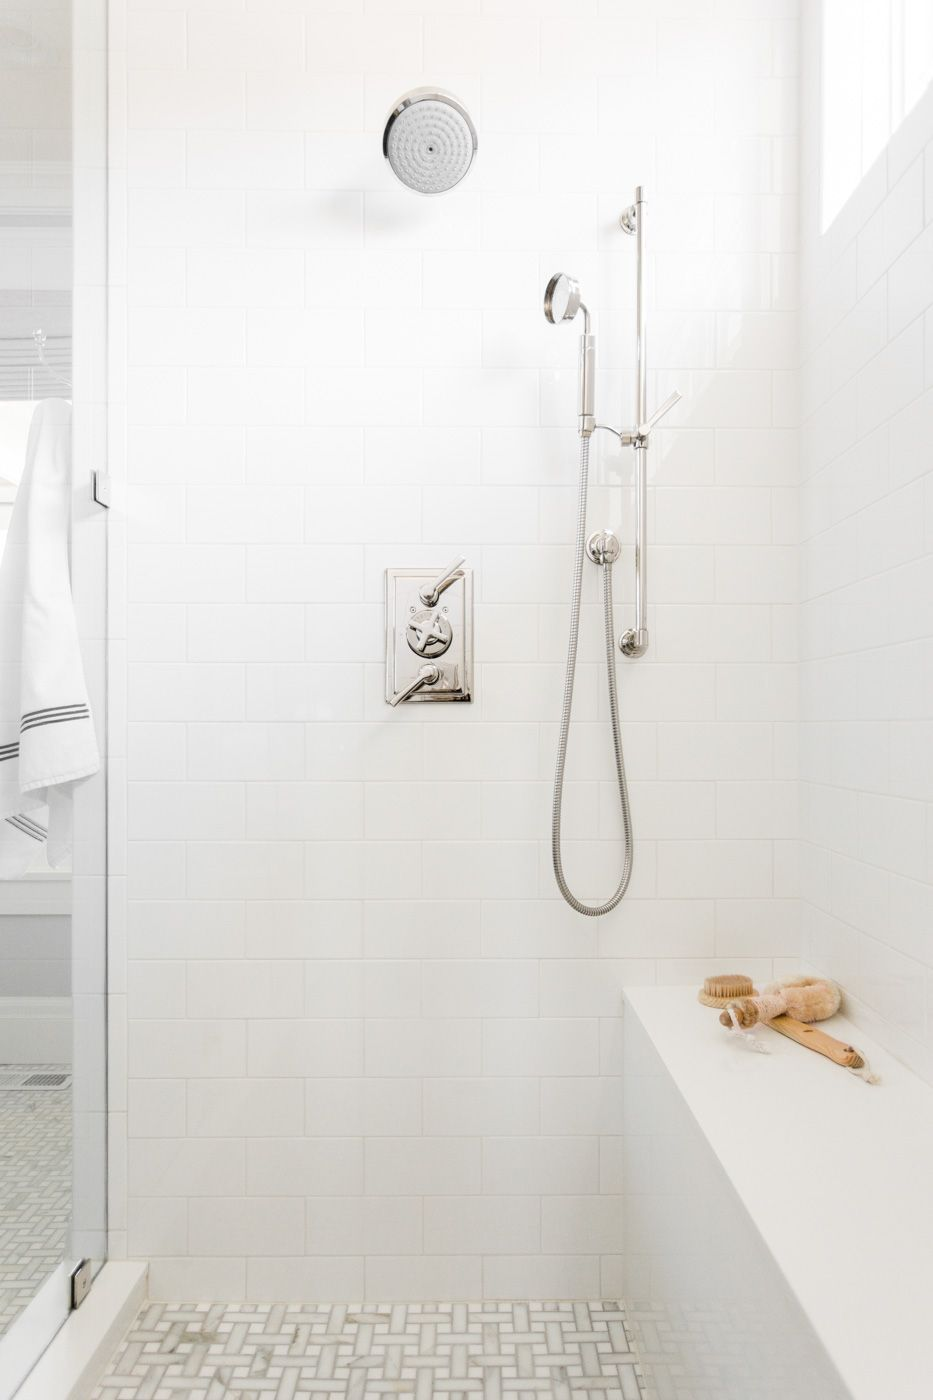 Choosing Bathroom Colors and Product for Remodel | Bathrooms ...